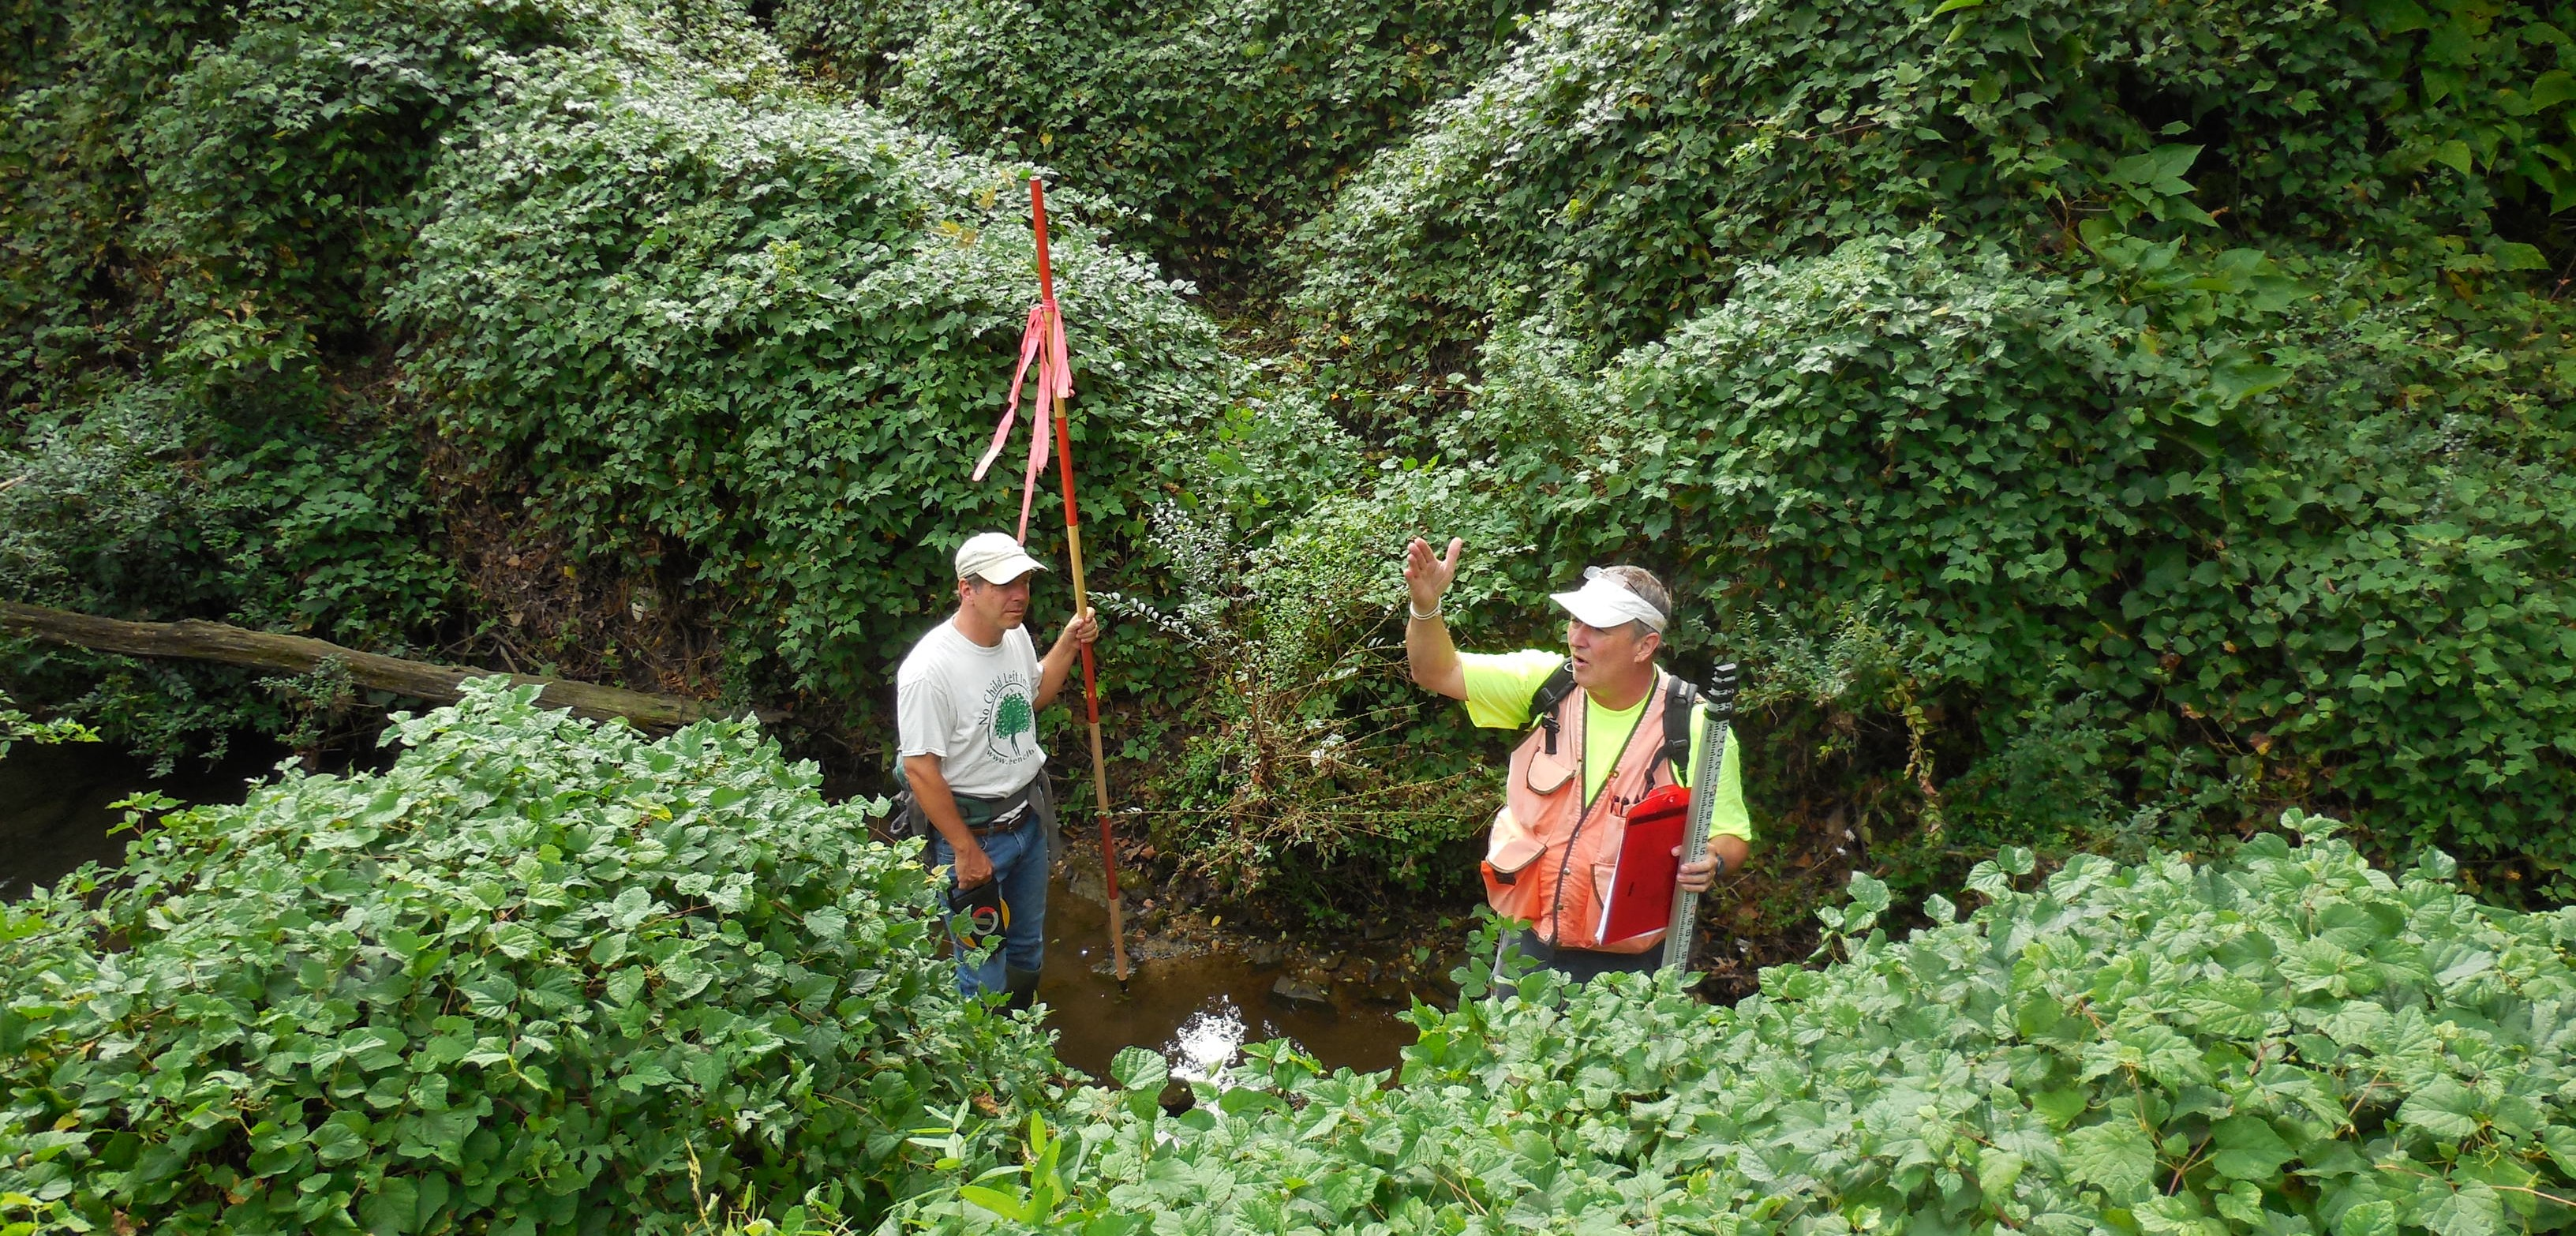 Sea Grant Extension Watershed Specialist Eric Buehl (right) and Chesapeake Bay Foundation Restoration Scientist Rob Schnabel assist with a stream assessment in the Town of Easton as part of an Envision the Choptank grant application to design two stream restoration projects. Credit: Sarah Hilderbrand, MD DNR.